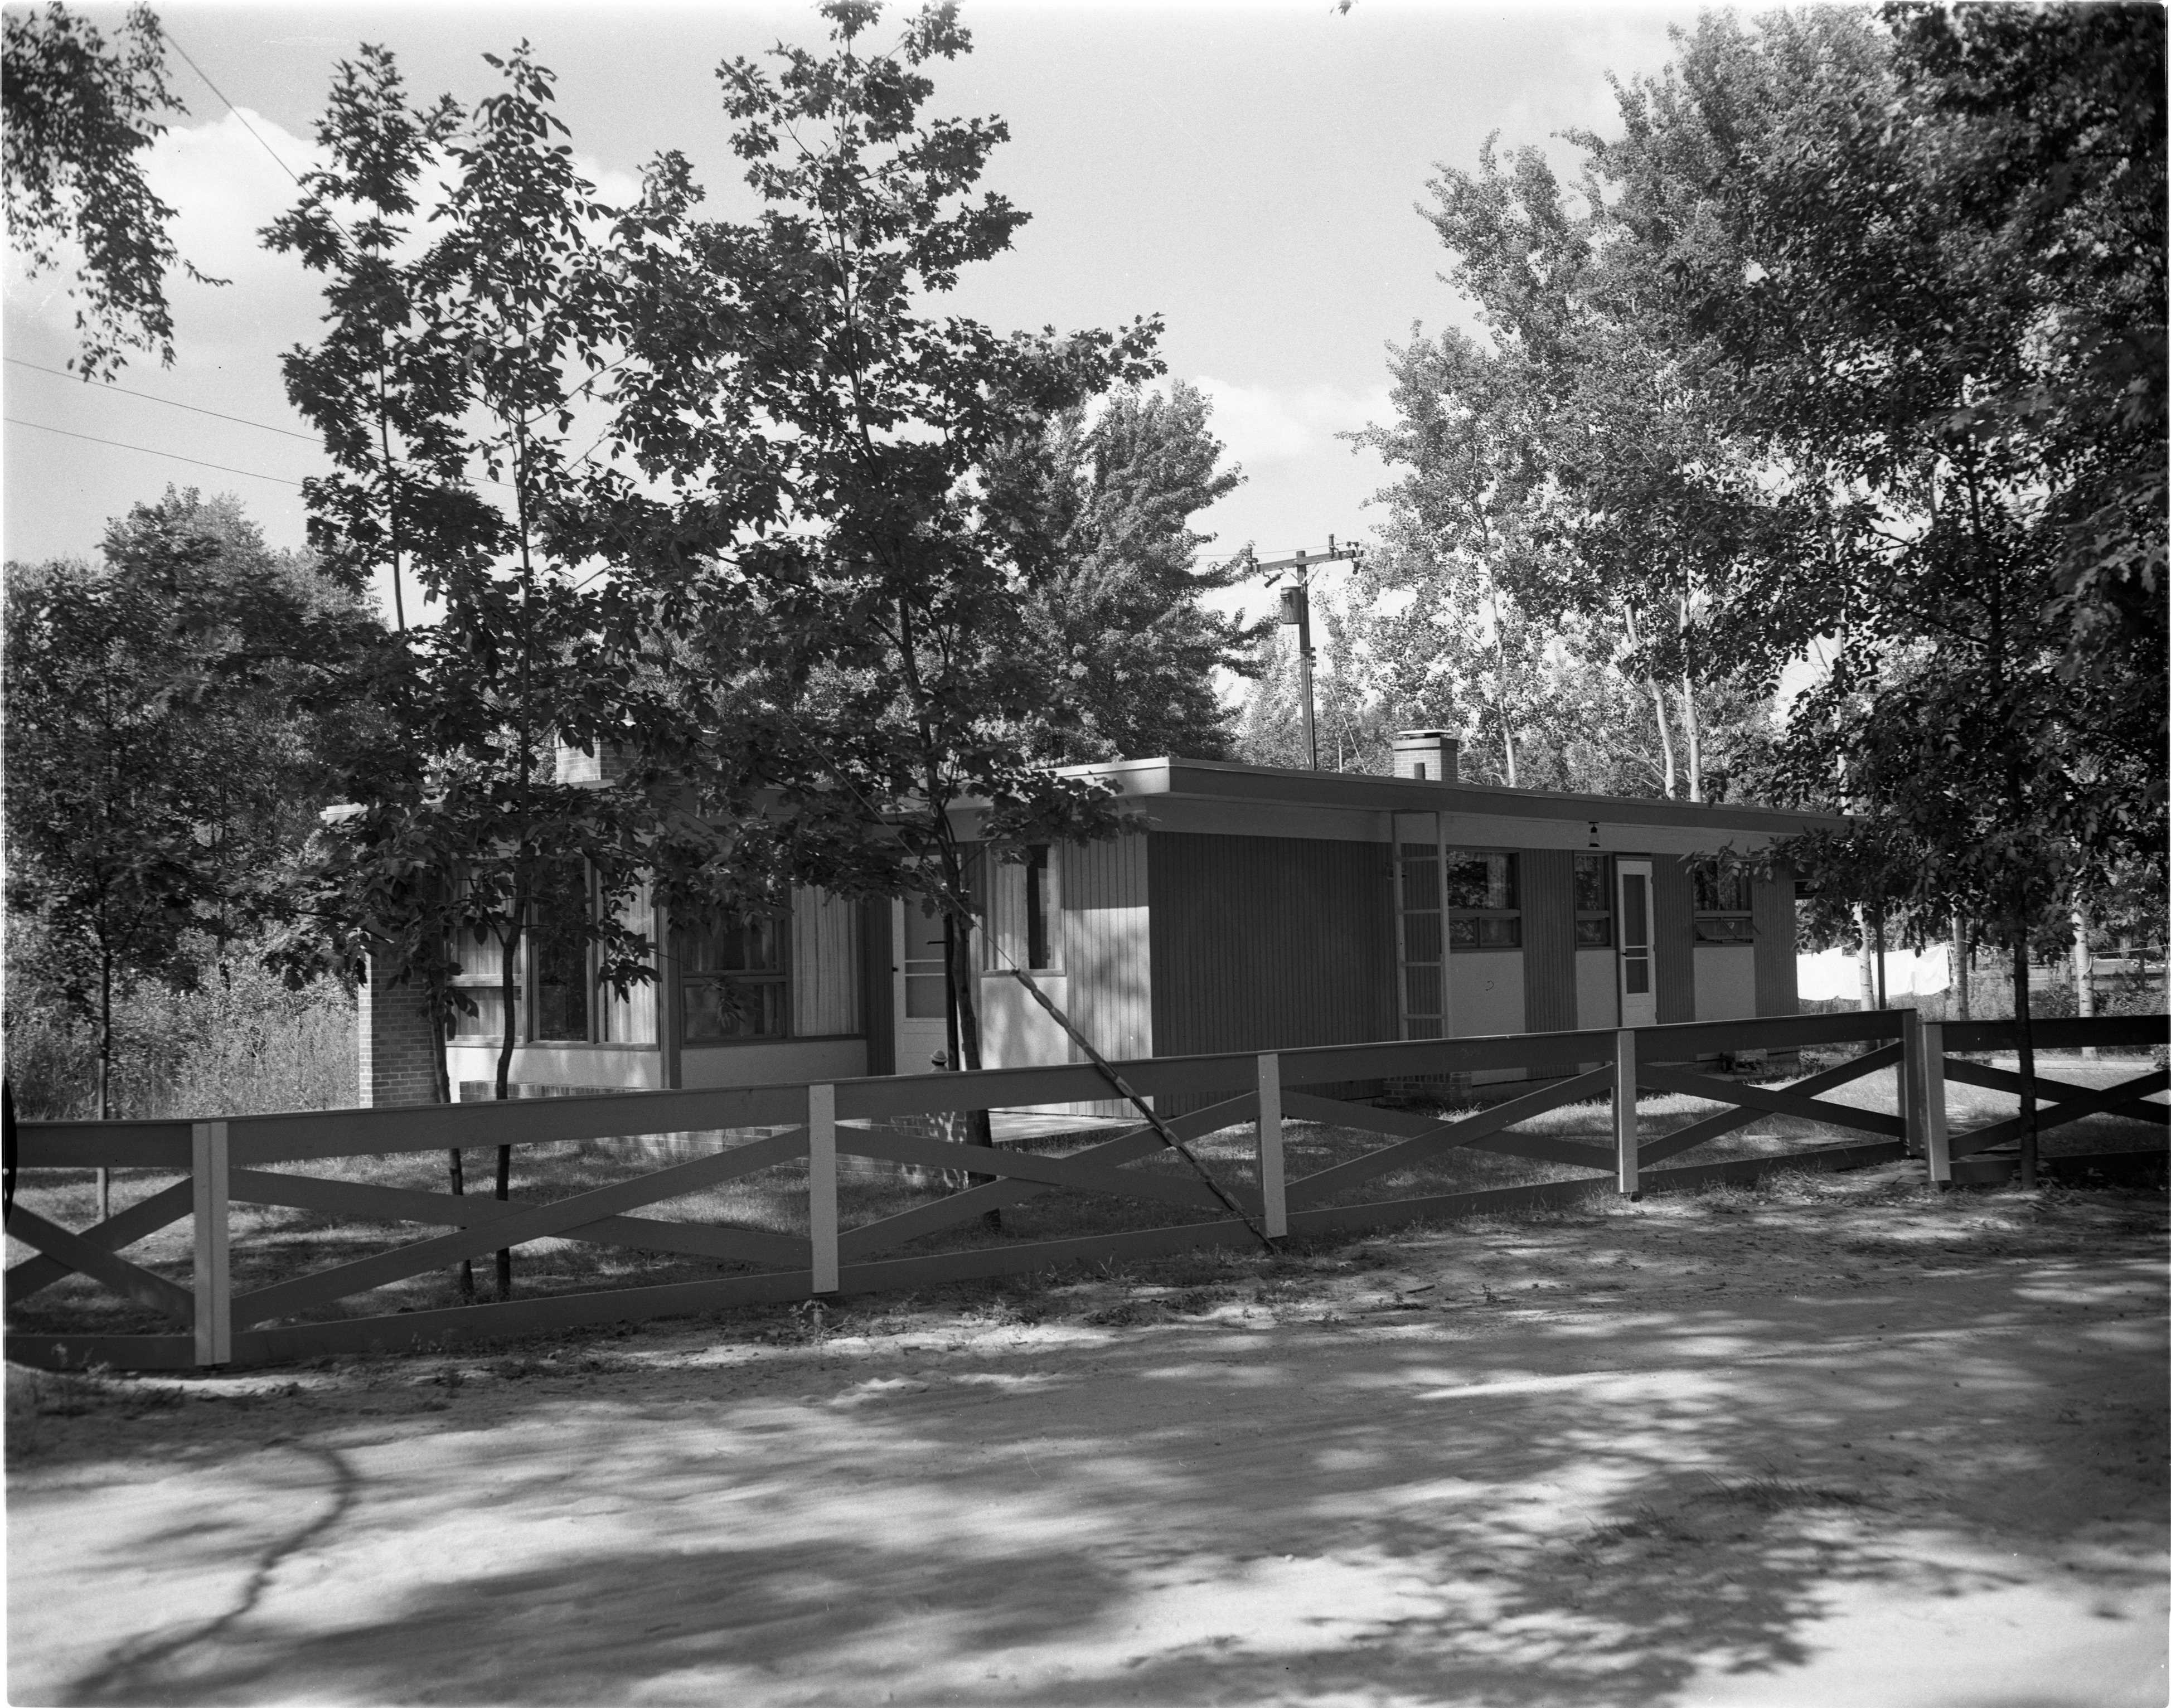 House In Deimen-Stull Subdivision On Bunny Lake, August 1957 image